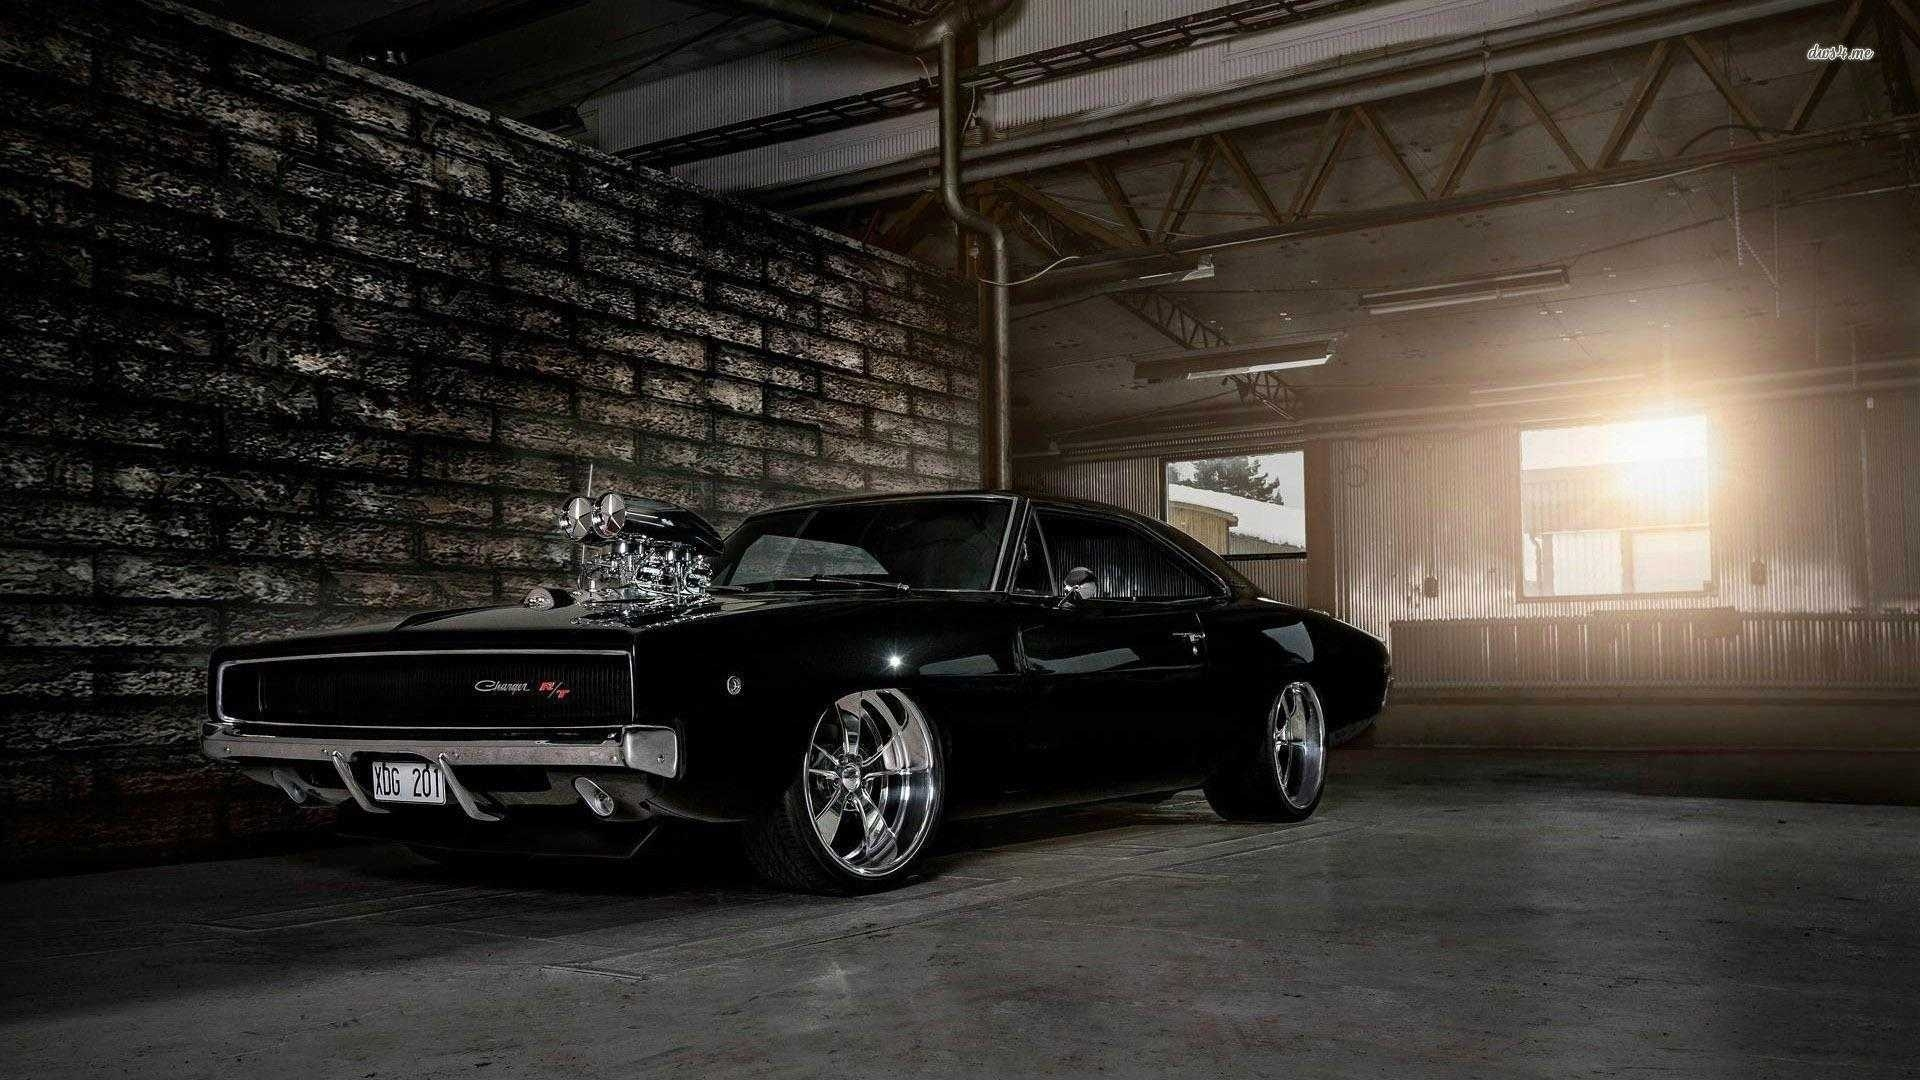 1969 dodge charger wallpaper hd images for androids ~ gipsypixel